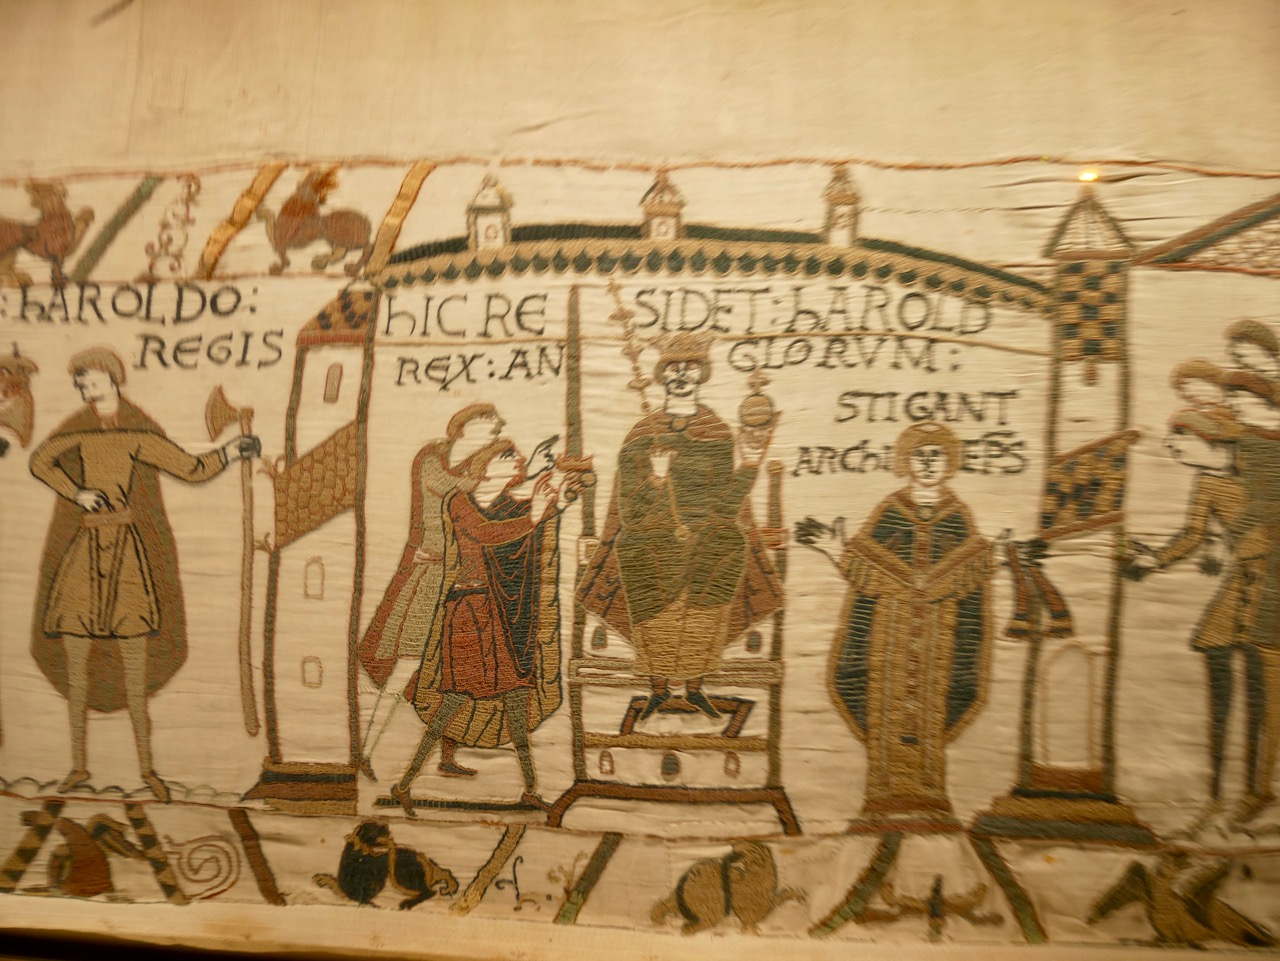 Do we really appreciate the Bayeux Tapestry?